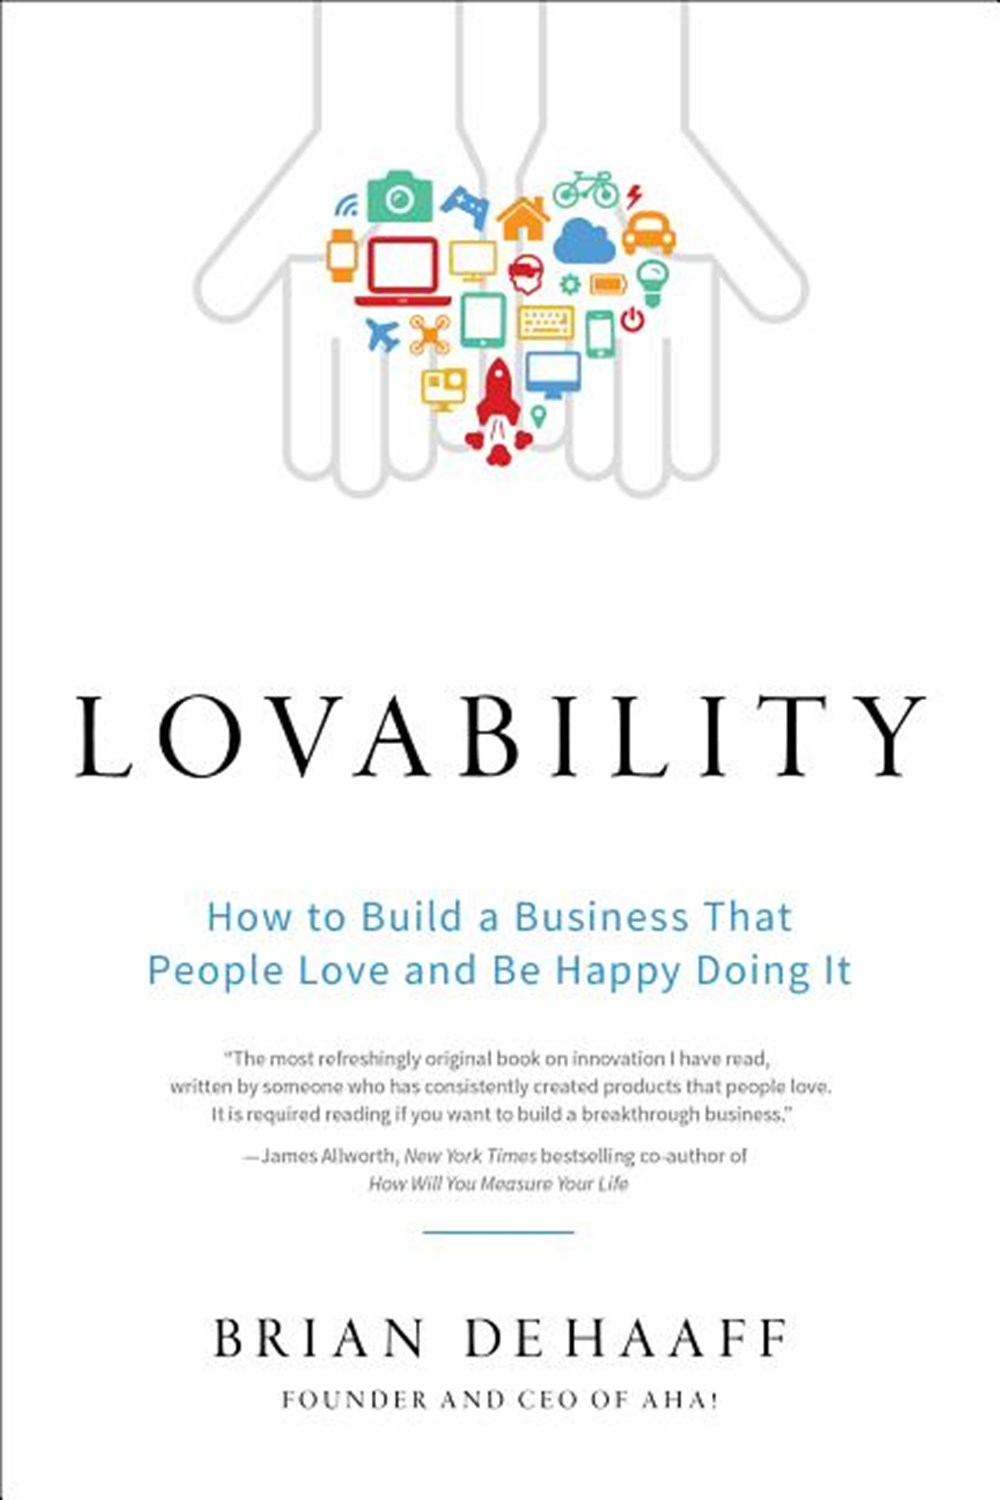 Lovability How to Build a Business That People Love and Be Happy Doing It